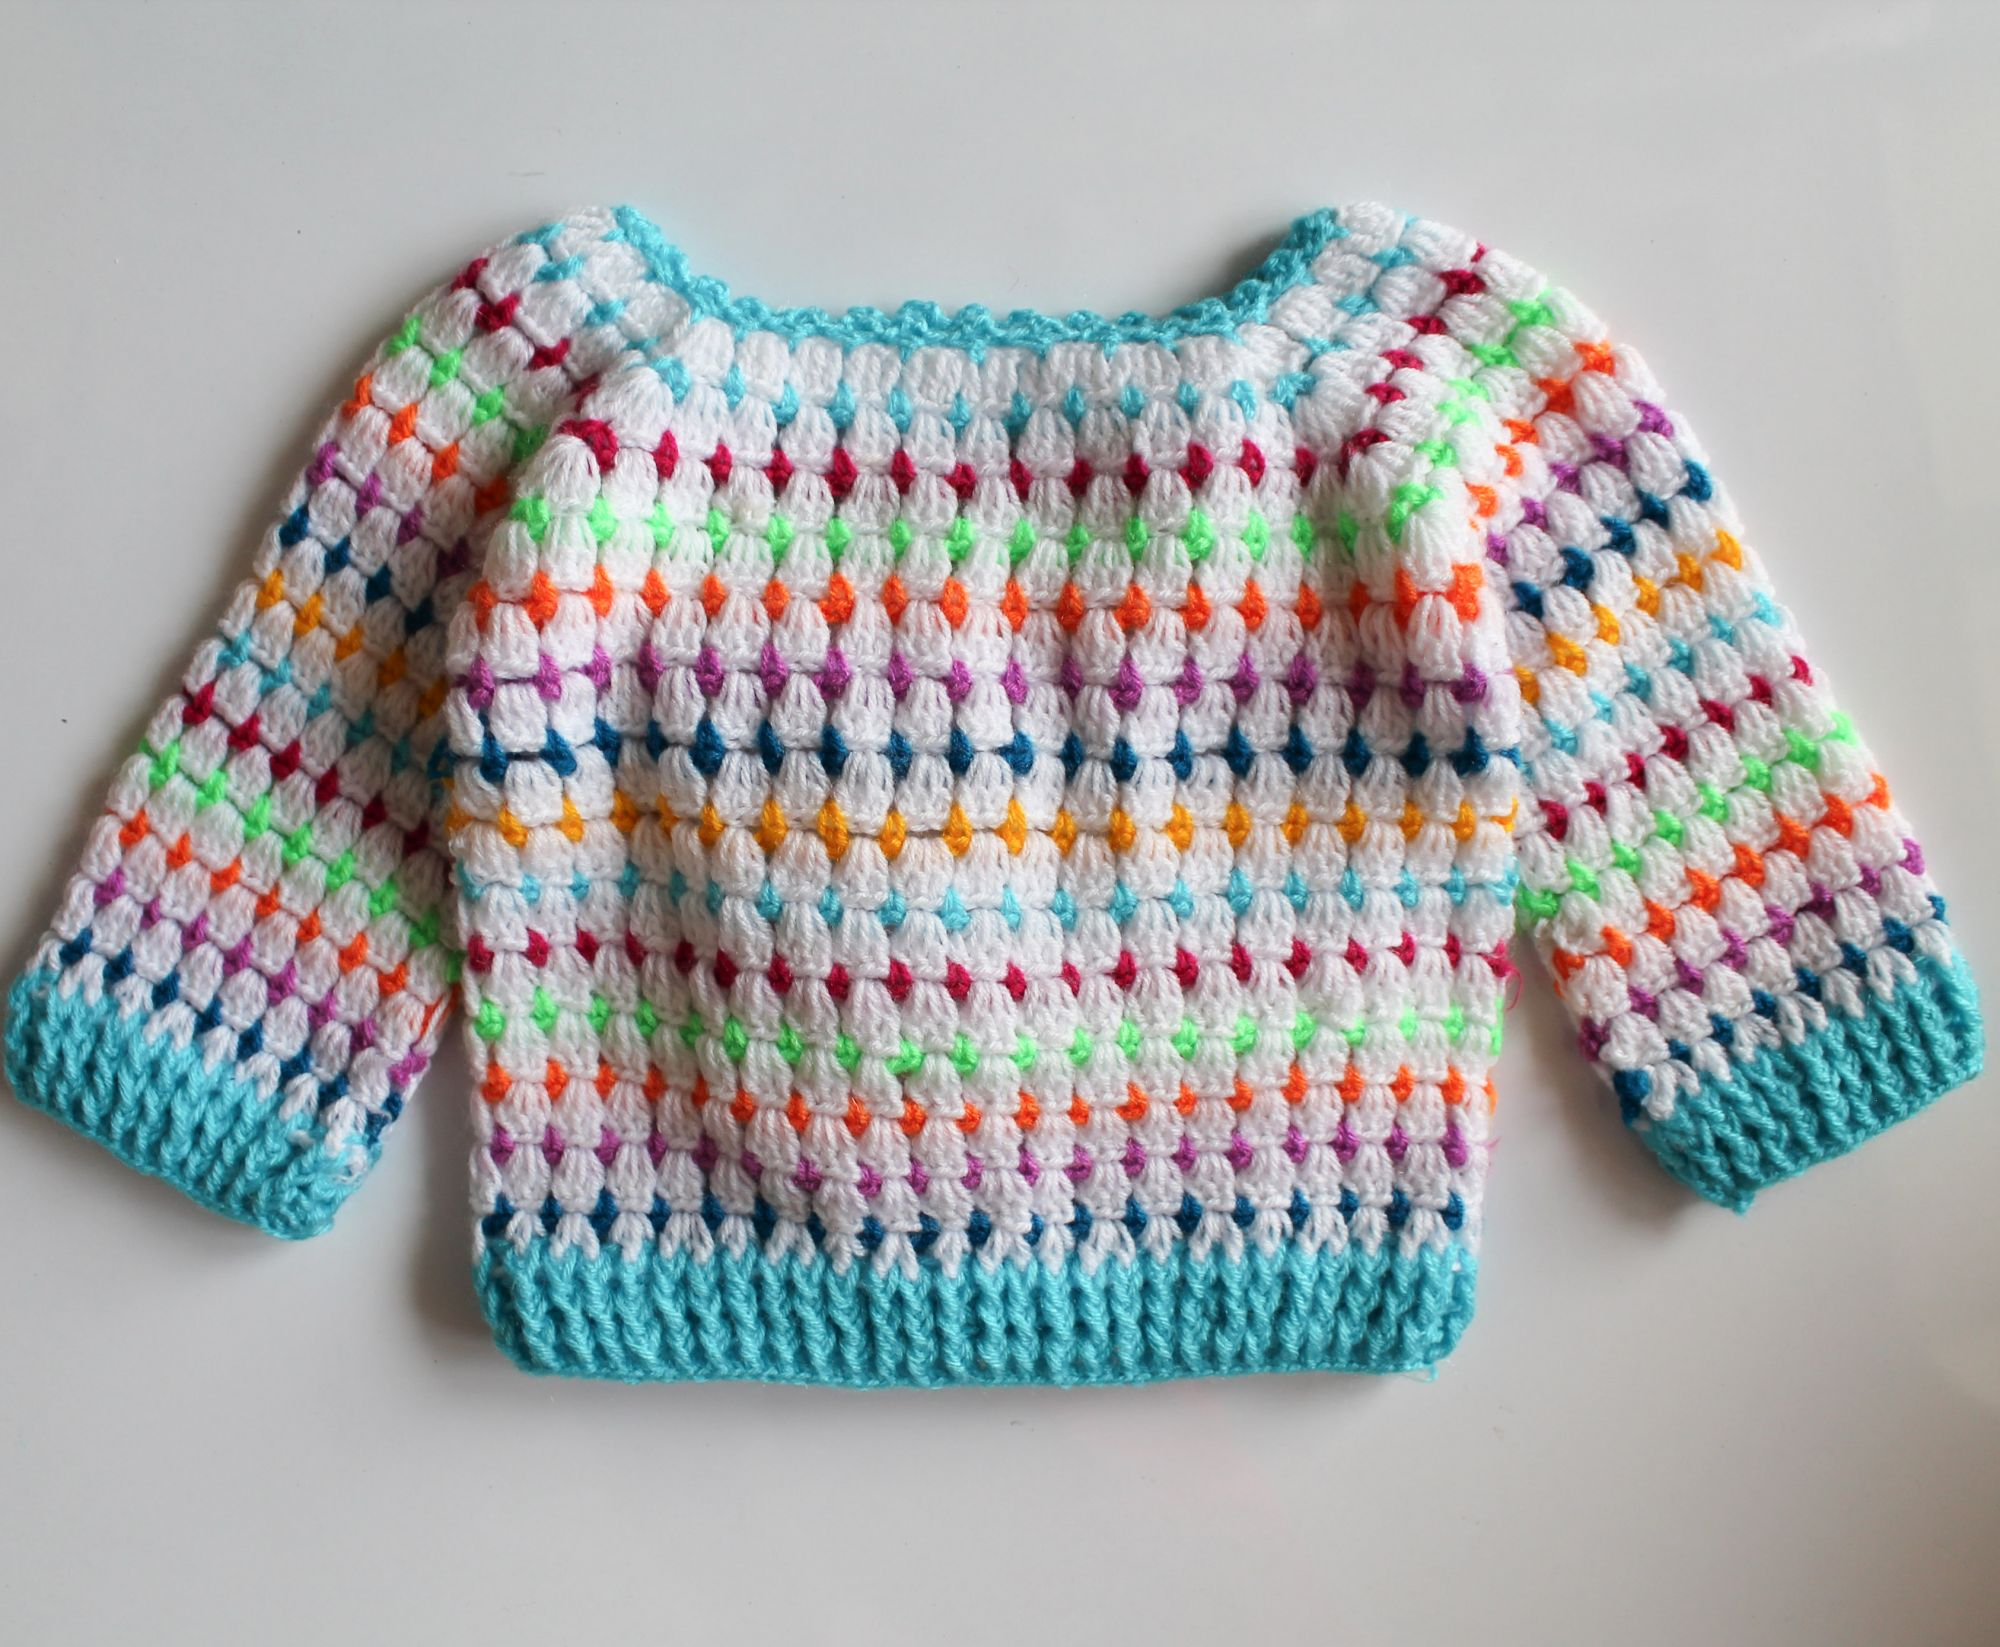 Woonie Handmade Multicolored Sweater for Kids